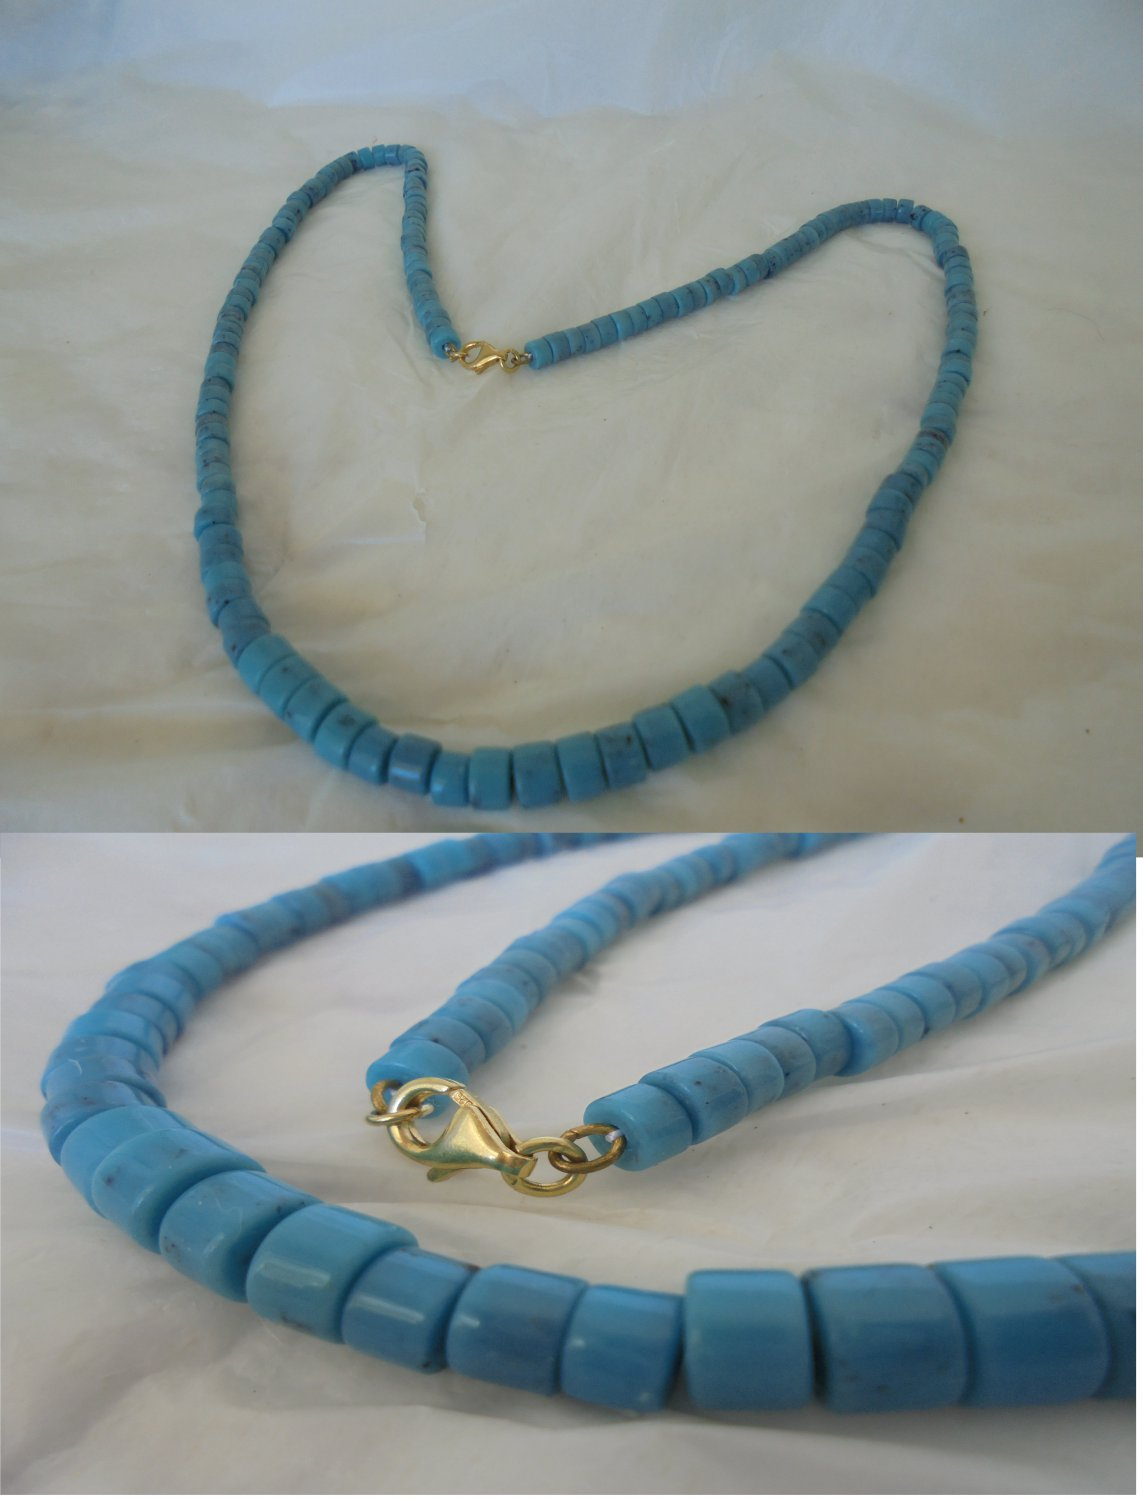 NECKLACE in TURQUOISE and Silver sterling 925 gold plated Indians of Zuni USA 1980s